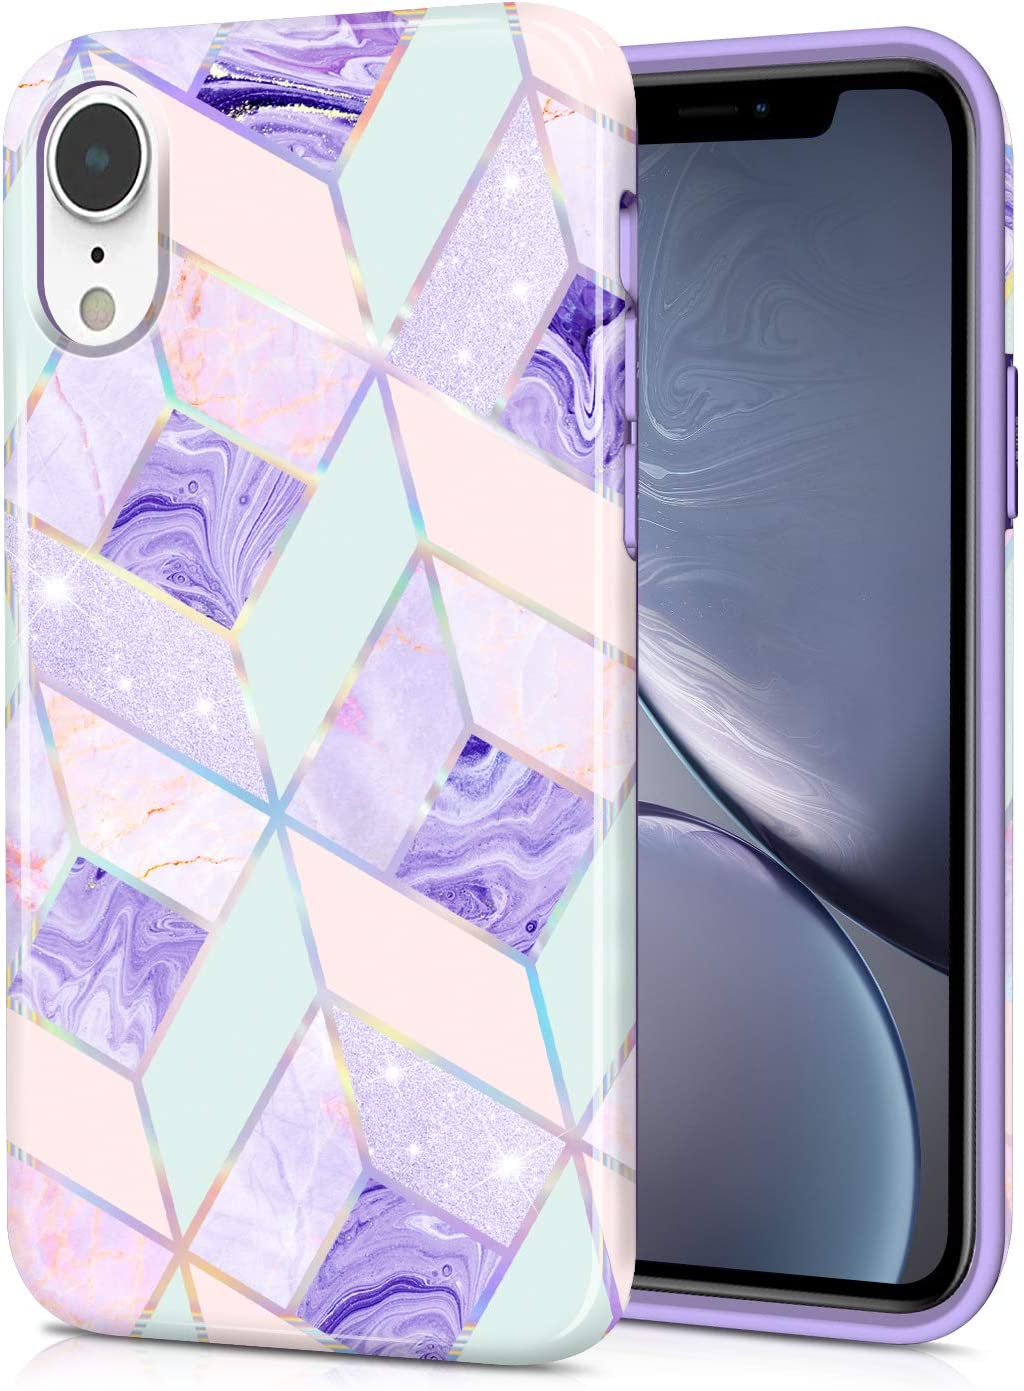 CAOUME Holographic Case Marble Soft TPU Silicone Bumper Guard Camera Screen for iPhone XR 2018, Purple Blue 6.1 inches